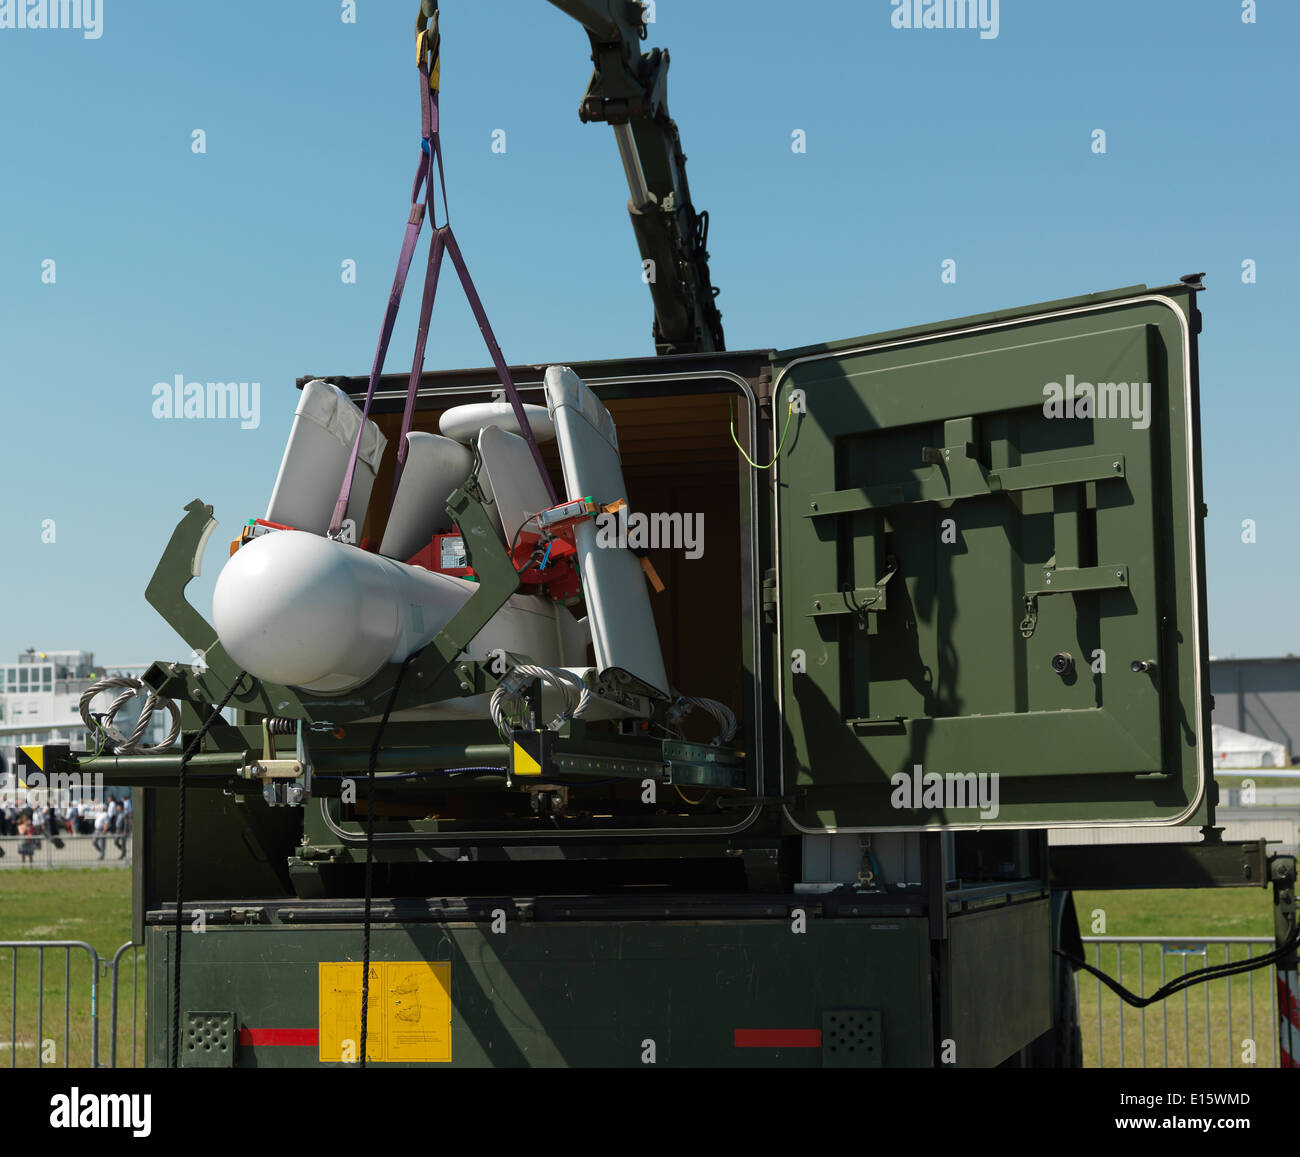 UAV KZO a German Reconnaissance and Target Acquisition drone shown by the German Army (Deutsches Heer), folded for transport. - Stock Image